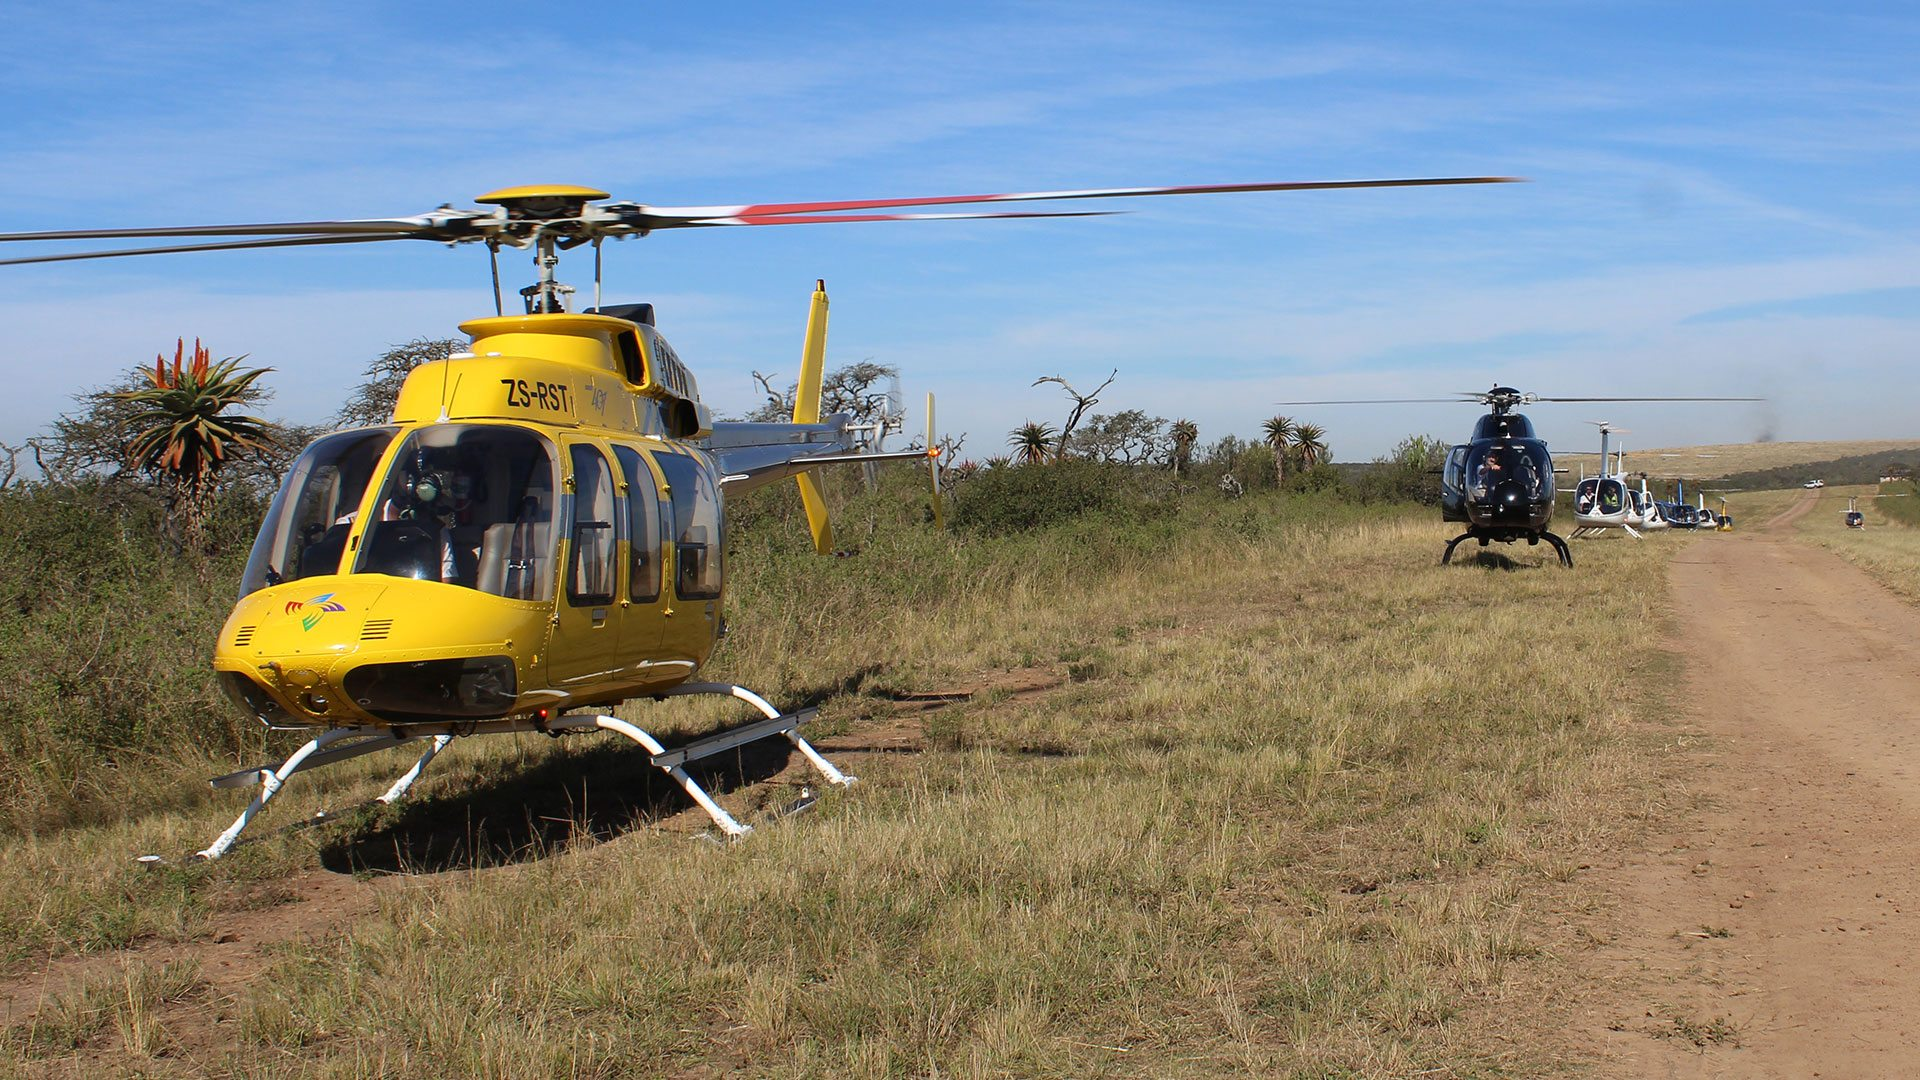 Durban Helicopter Flight to Tala Private Game Reserve